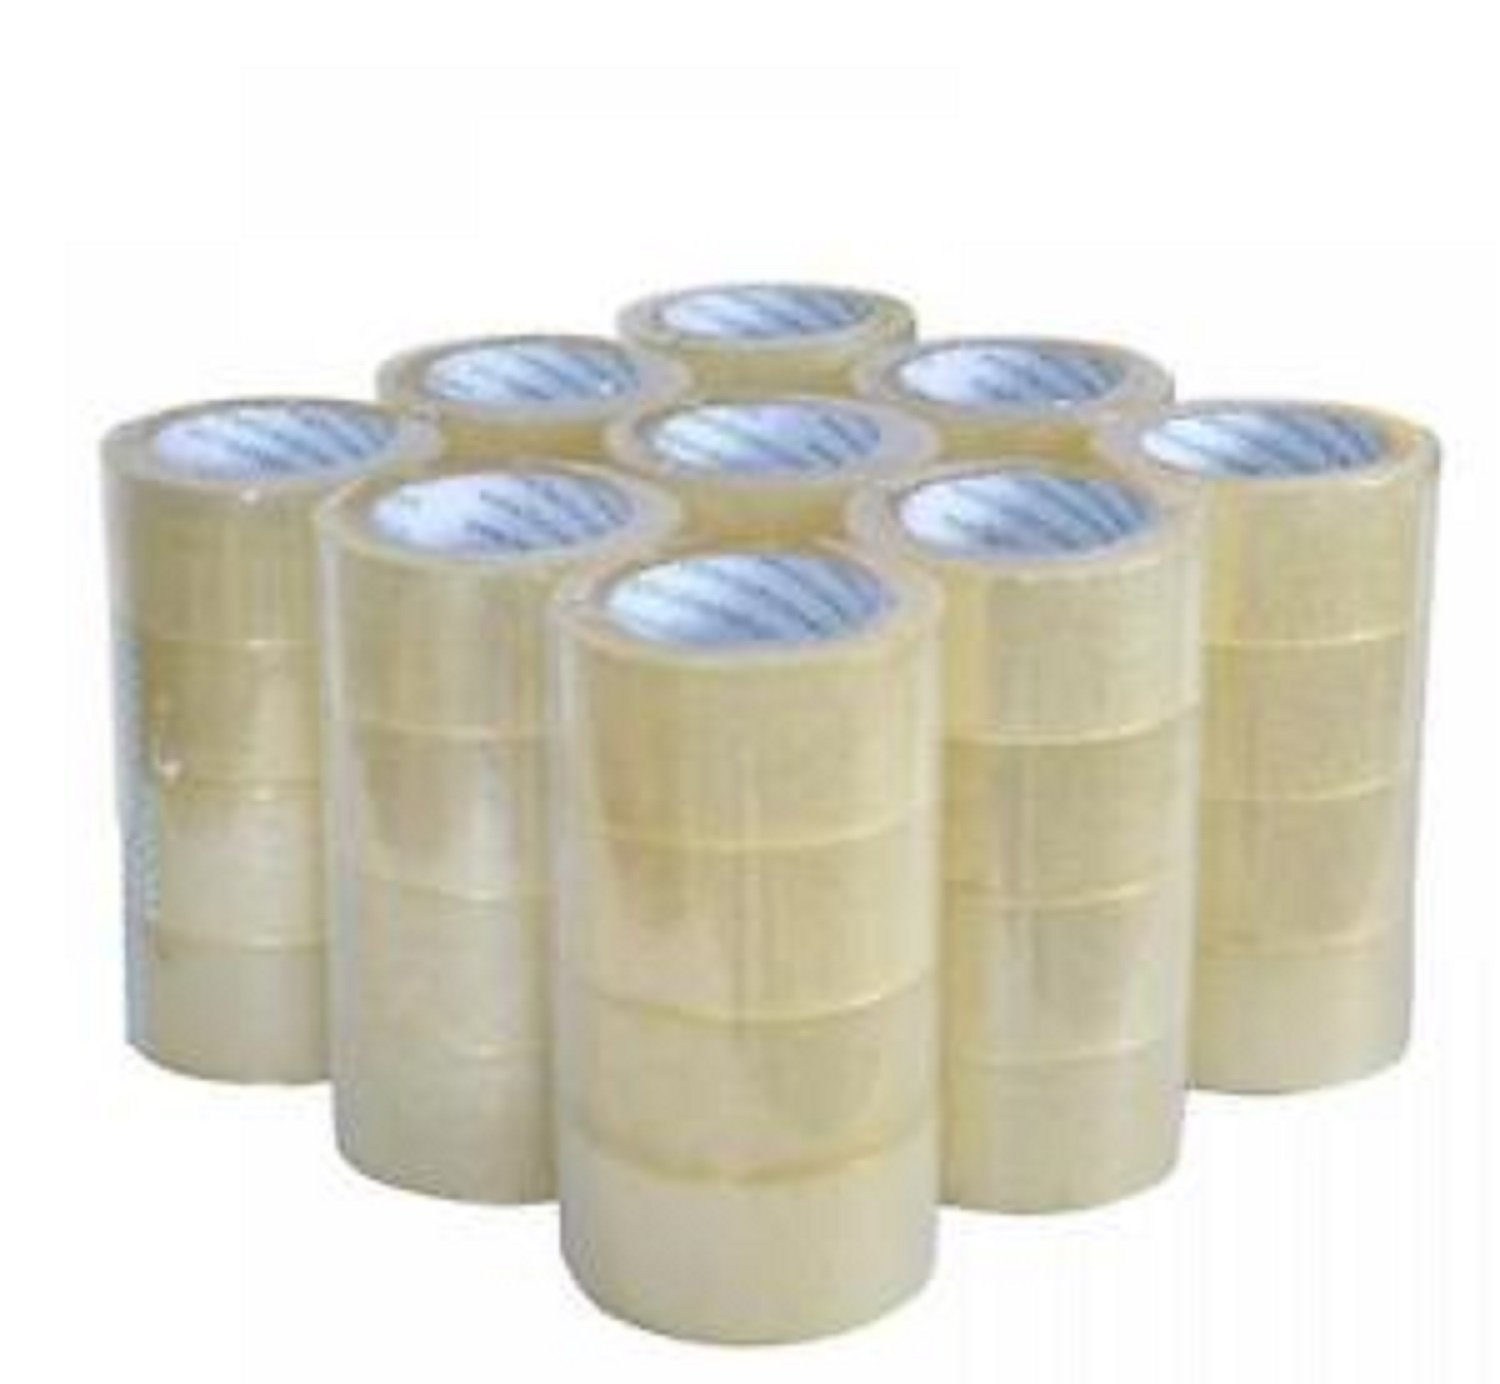 Heavy Duty Sealing Packing Tape - 12 Rolls, 2.1mil thick, 55 Yards, 165Ft